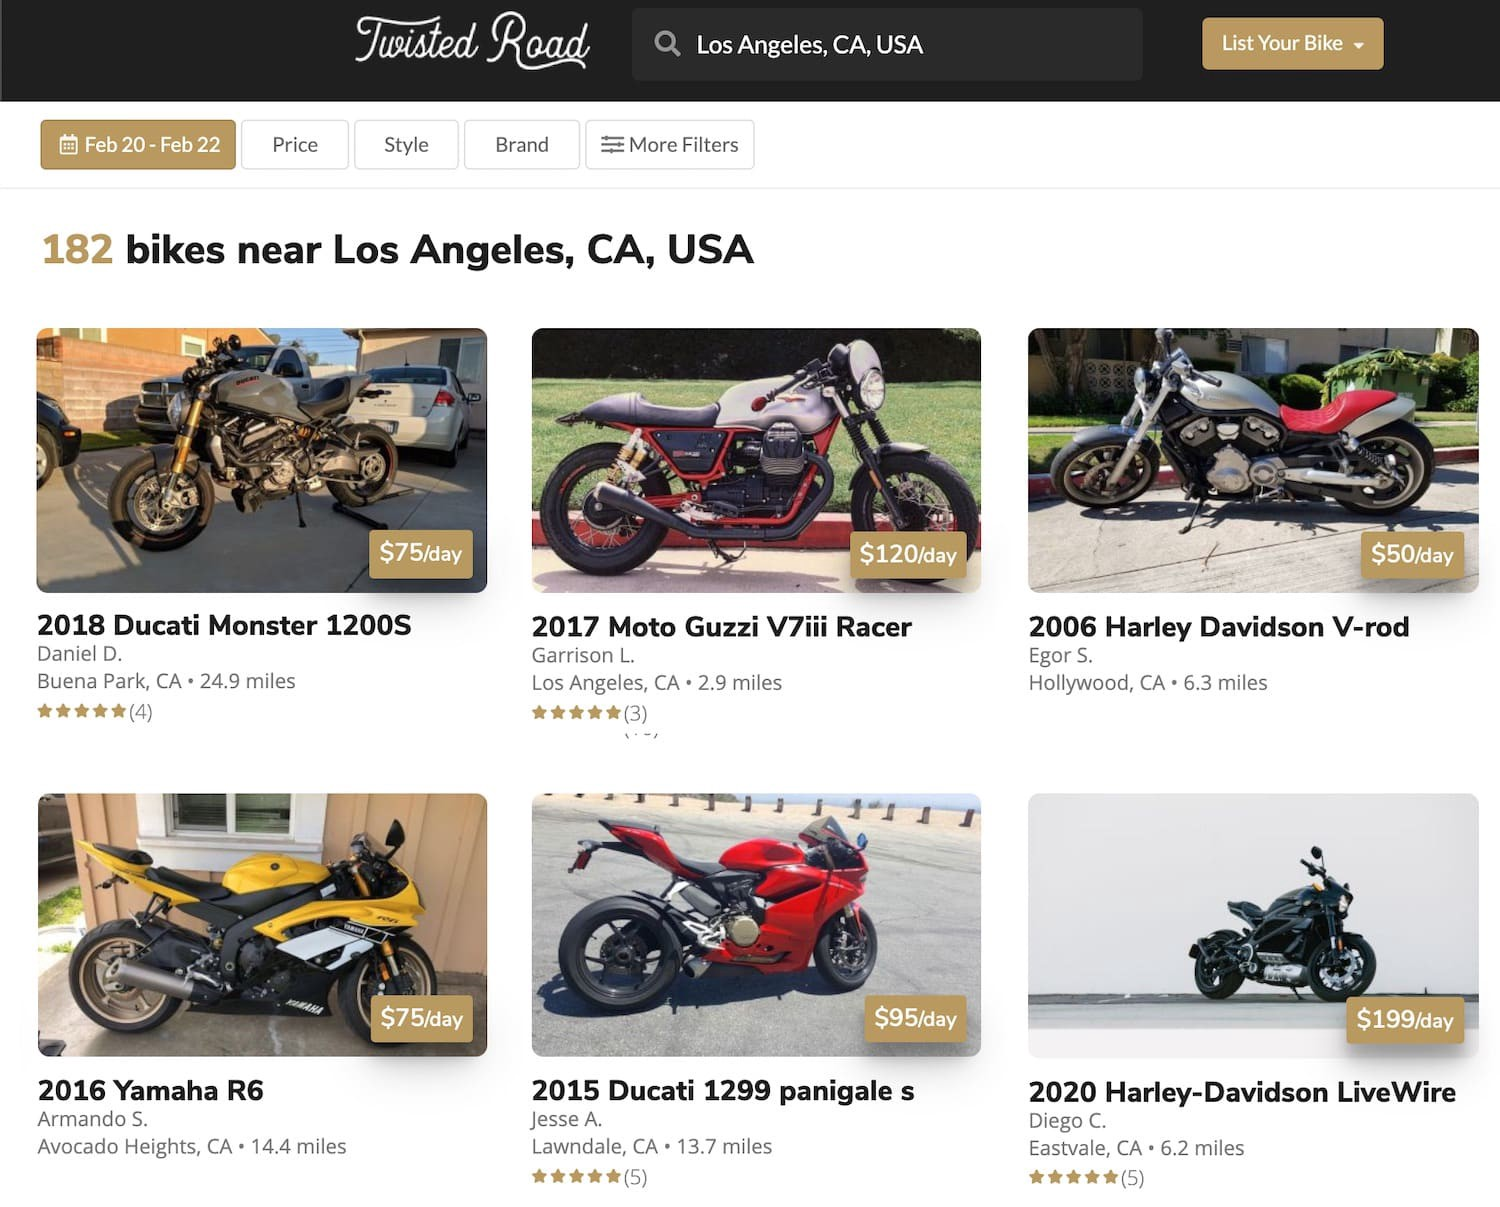 Examples of motorcycles in Los Angeles you can rent on Twisted Road